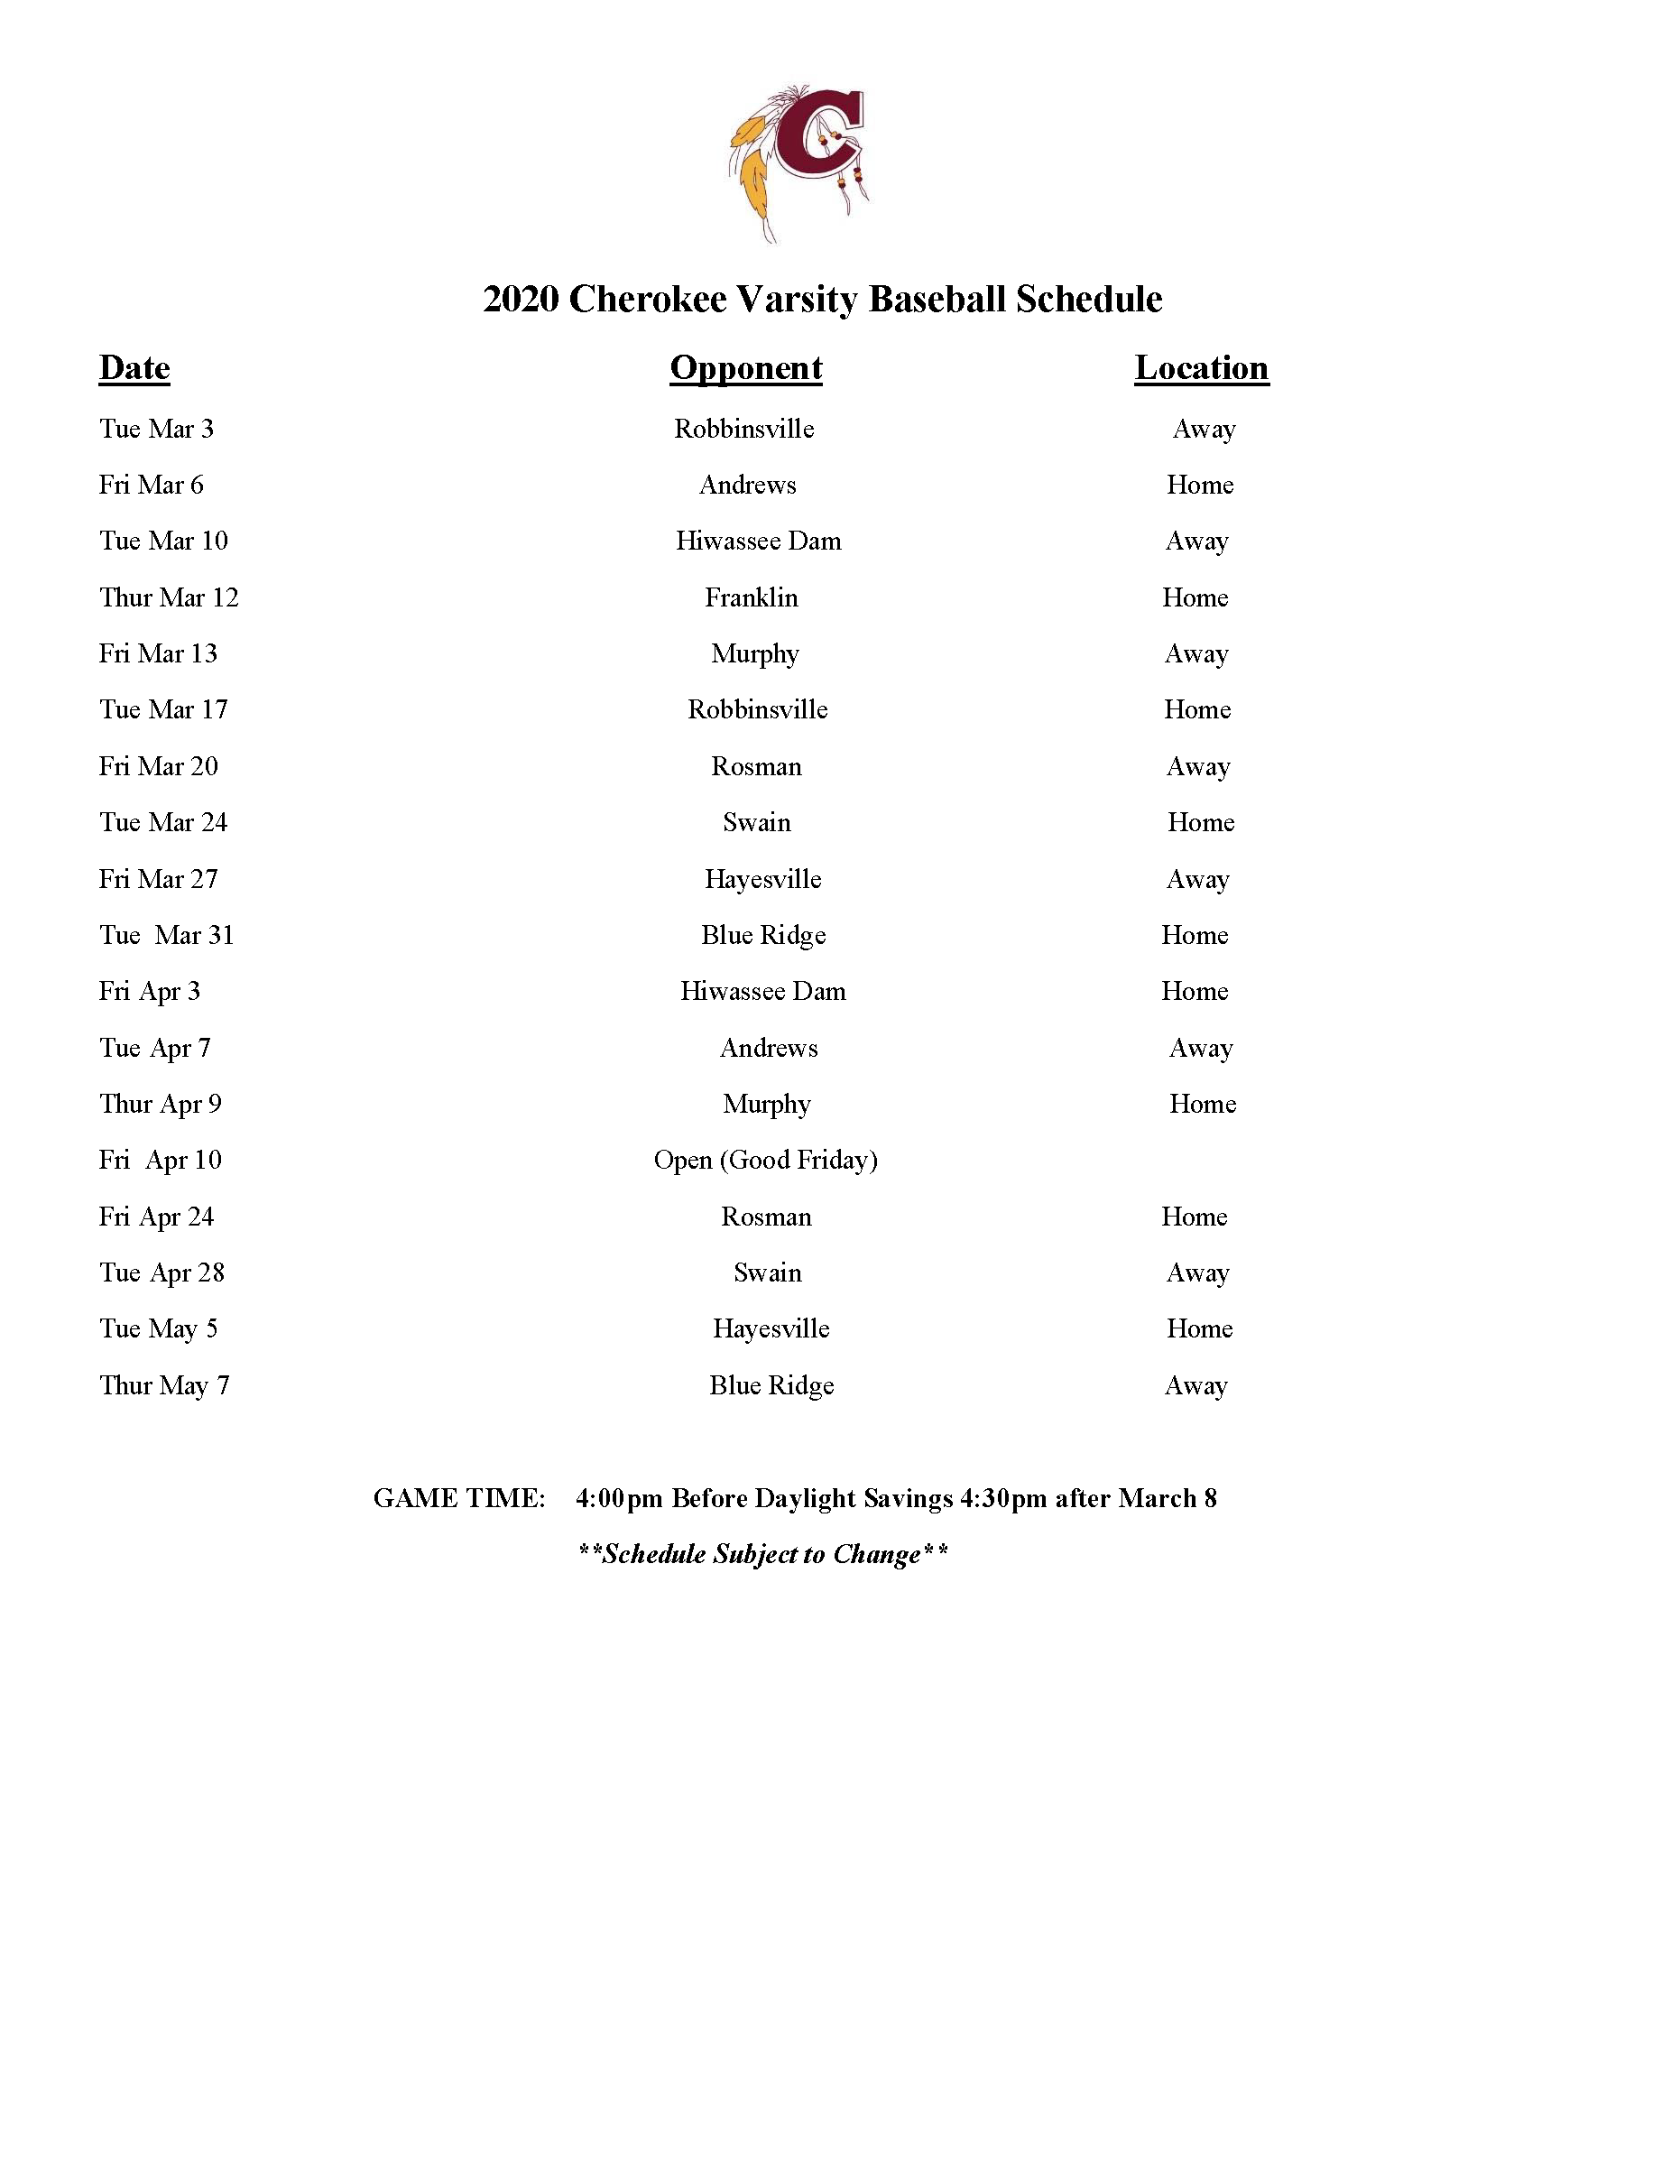 2020 CHS Baseball Schedule